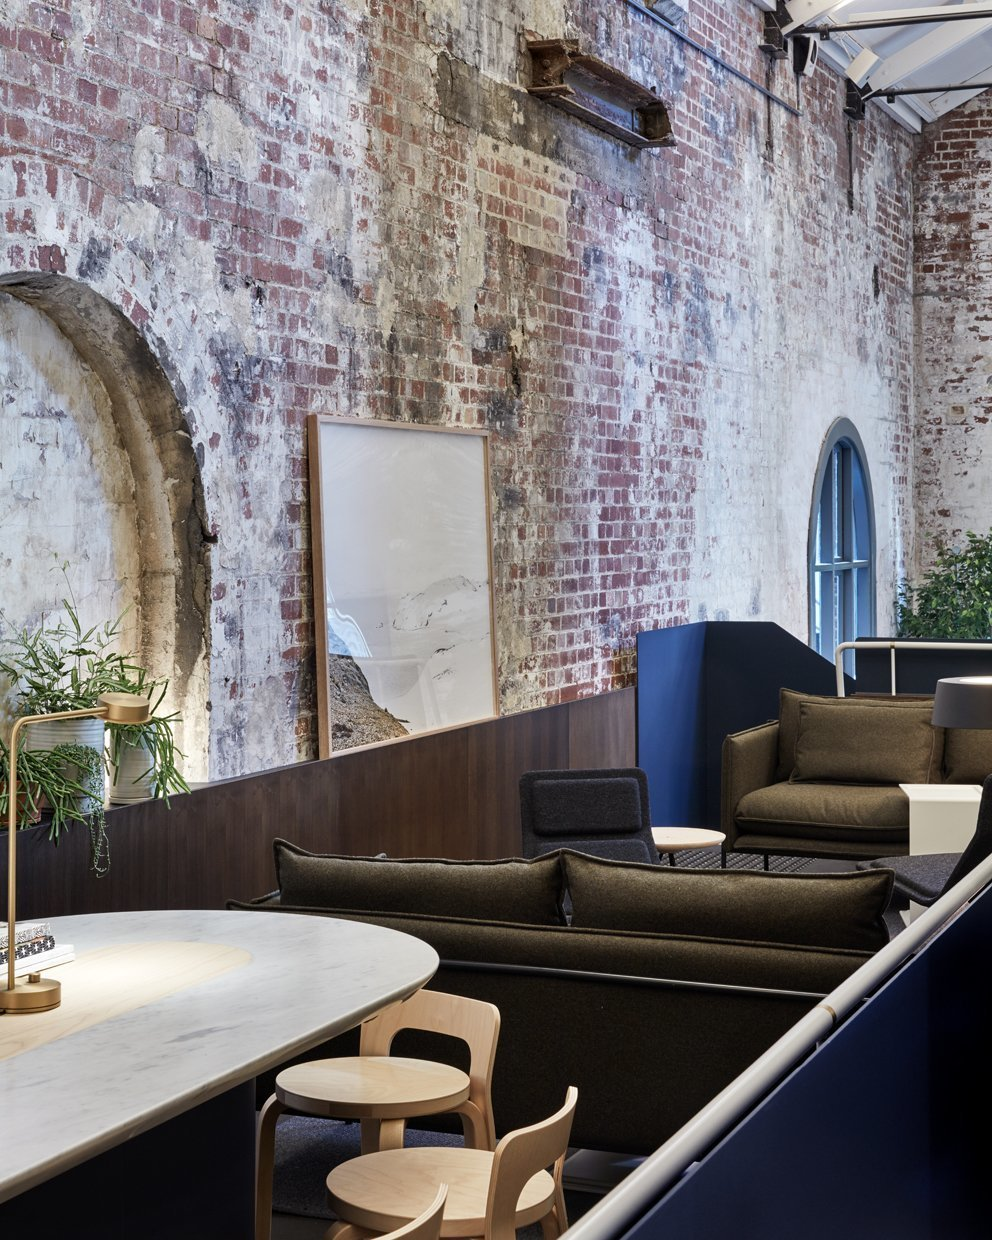 A former power station in Melbourne's city center was repurposed into a chic restaurant with six new connected levels. The architects kept the old building's large arch windows and nooks, which certainly add more character to the modern interiors.  Photo 9 of 11 in Discover 10 Impressive Spaces With Arched Windows and Doors